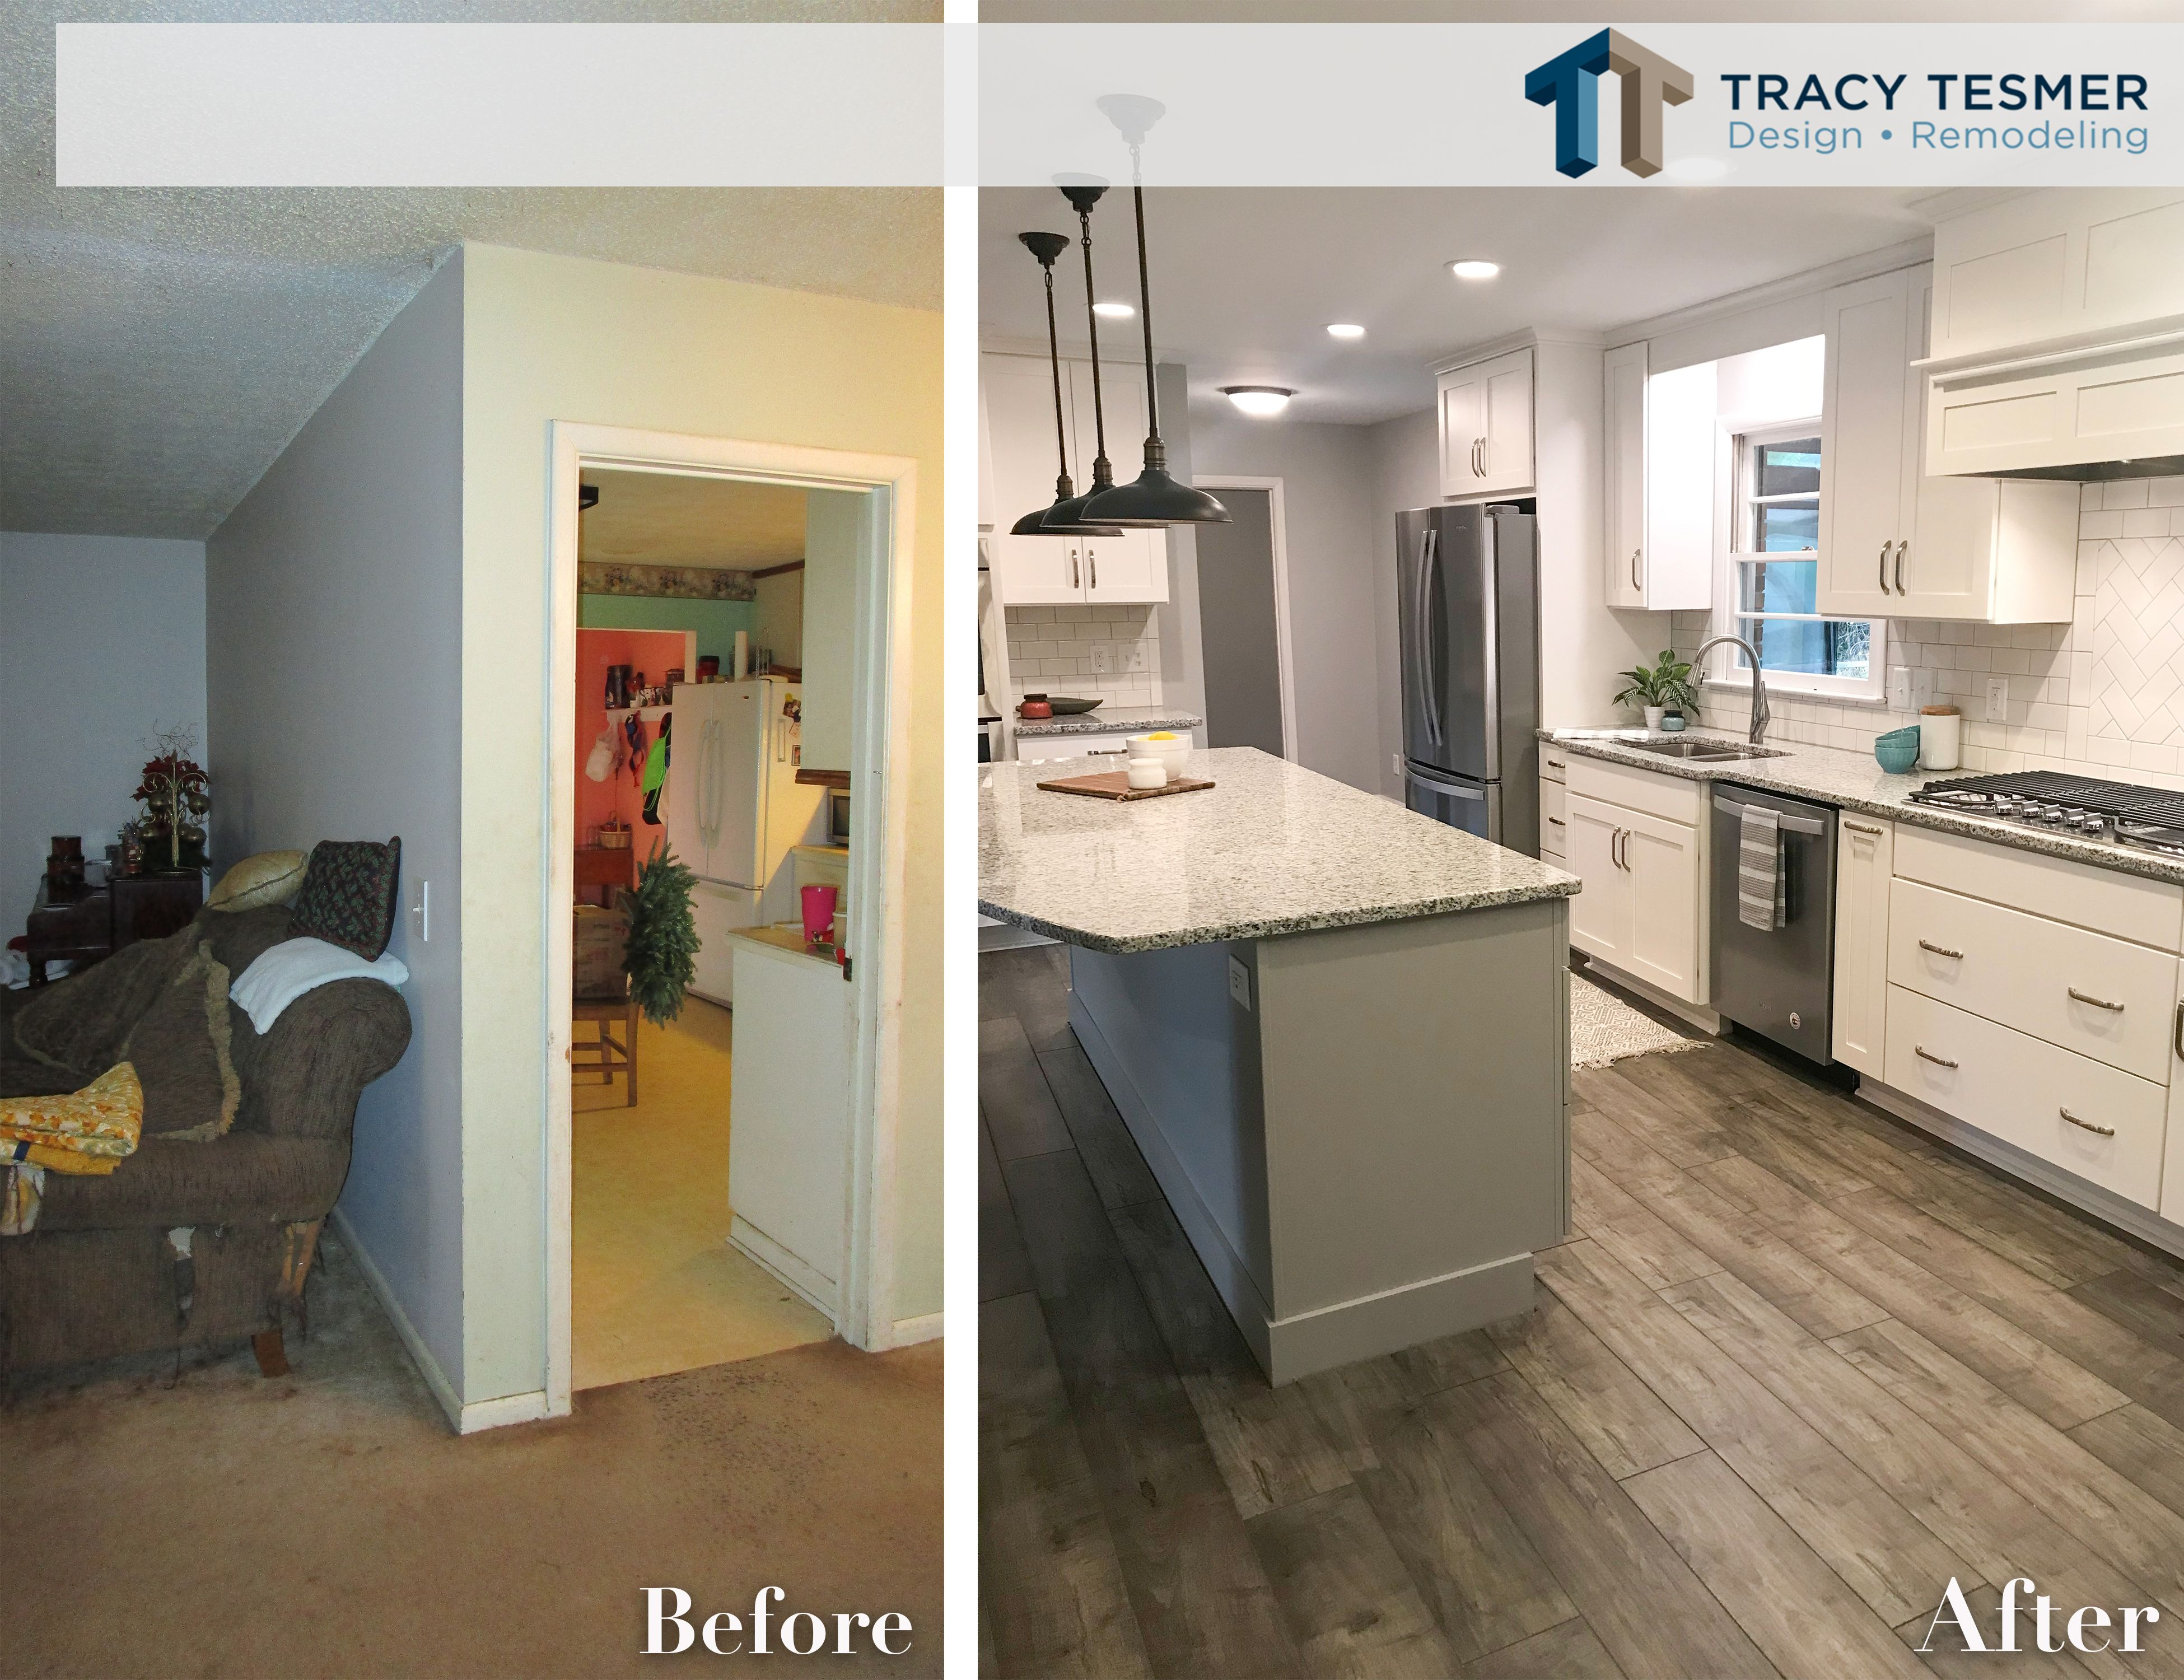 Here S A Before And After From A Recent Project Taking Down Walls May Not Always Suit The Project B Home Remodeling Contractors Home Remodeling Design Remodel